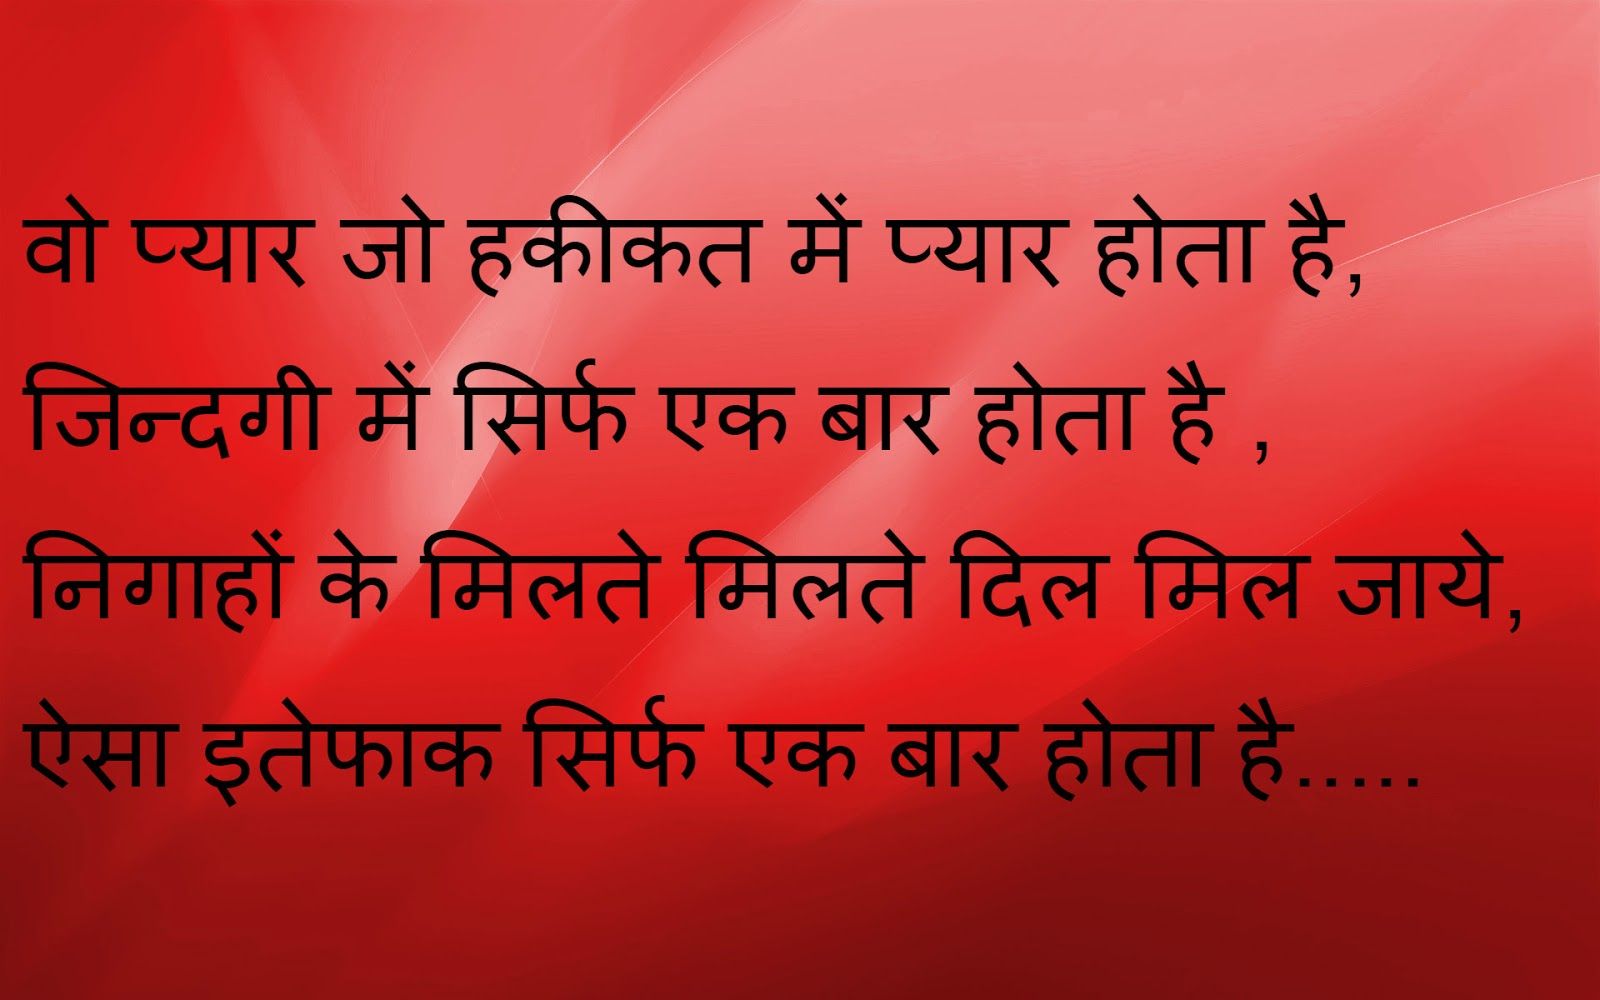 top30 hindi joke shayari dosti in english love romantic image sms